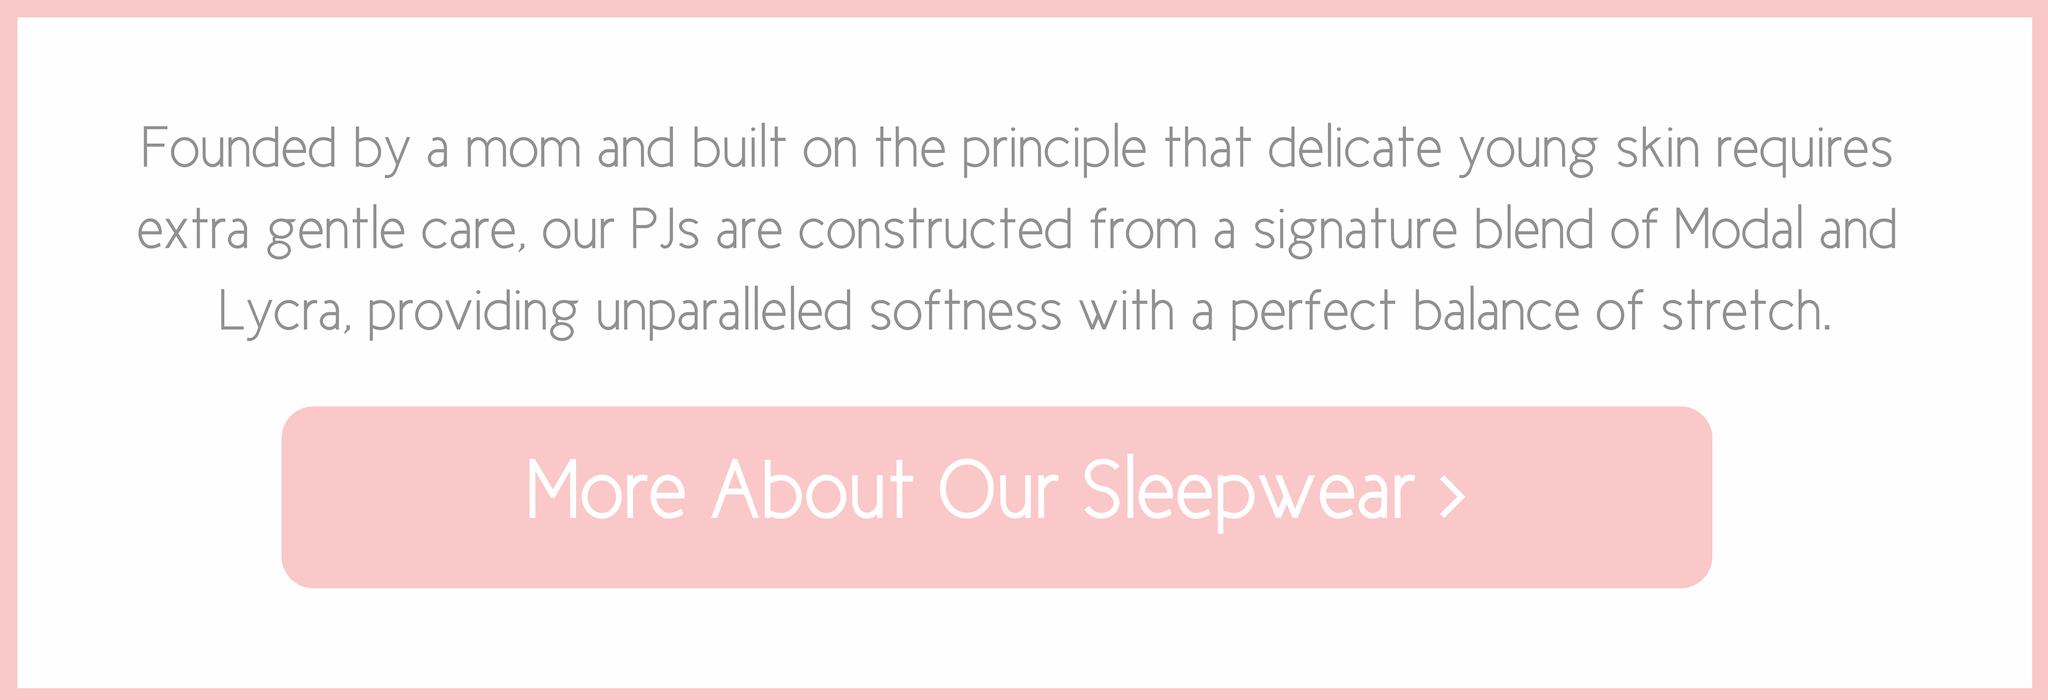 westyn-baby-more-about-our-sleepwear